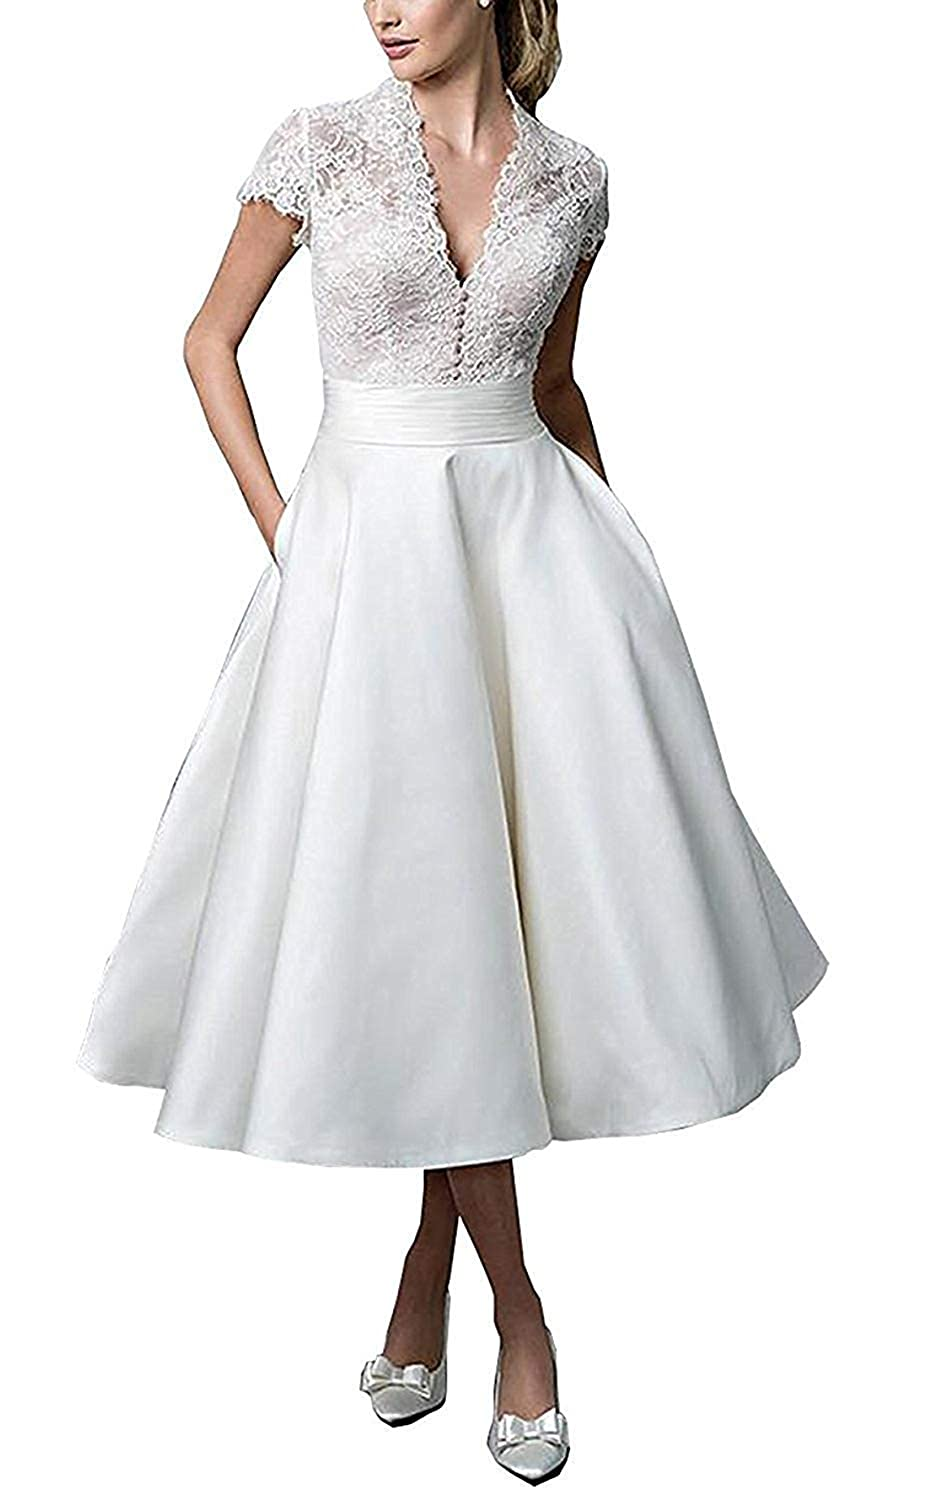 Ivory Wedding Dresses for Bride 2019 Beach Bridal Dress with Short Sleeves Lace Wedding Gowns for Women